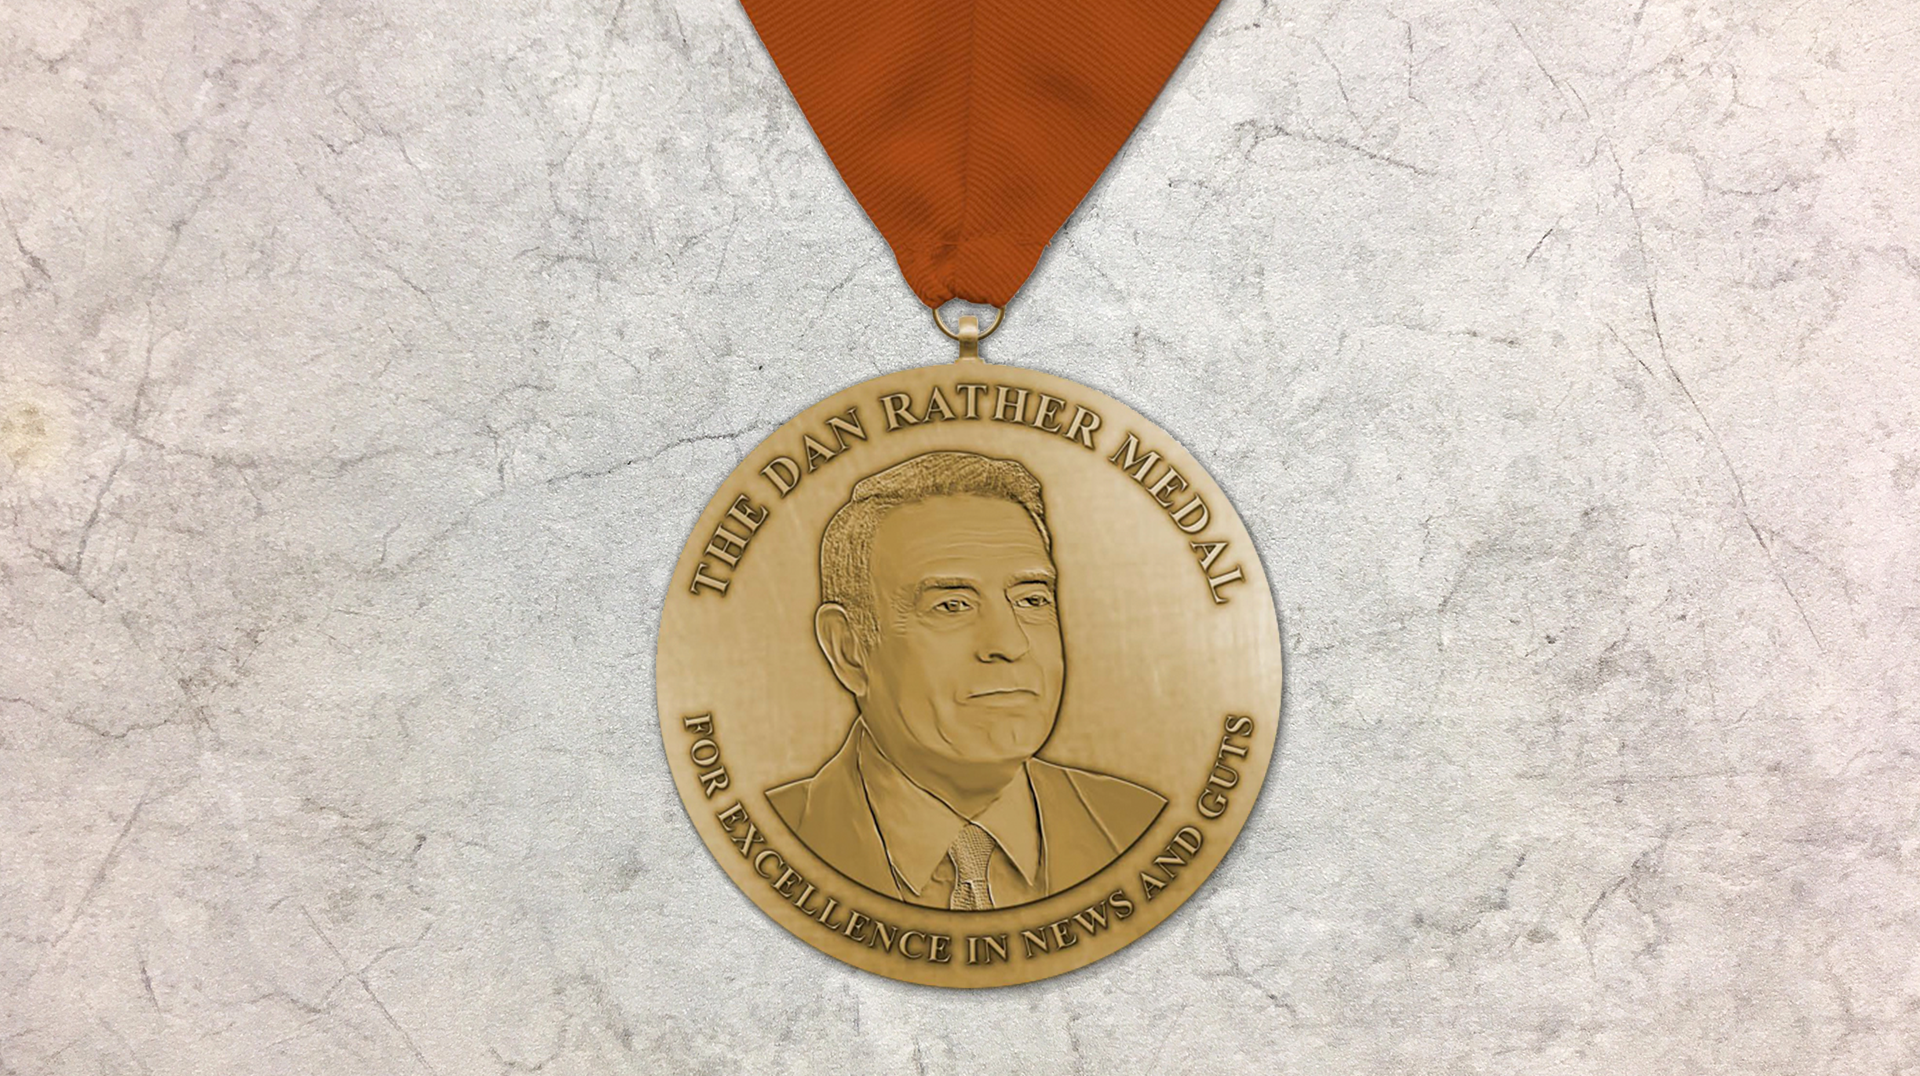 Dan Rather Medal for News and Guts